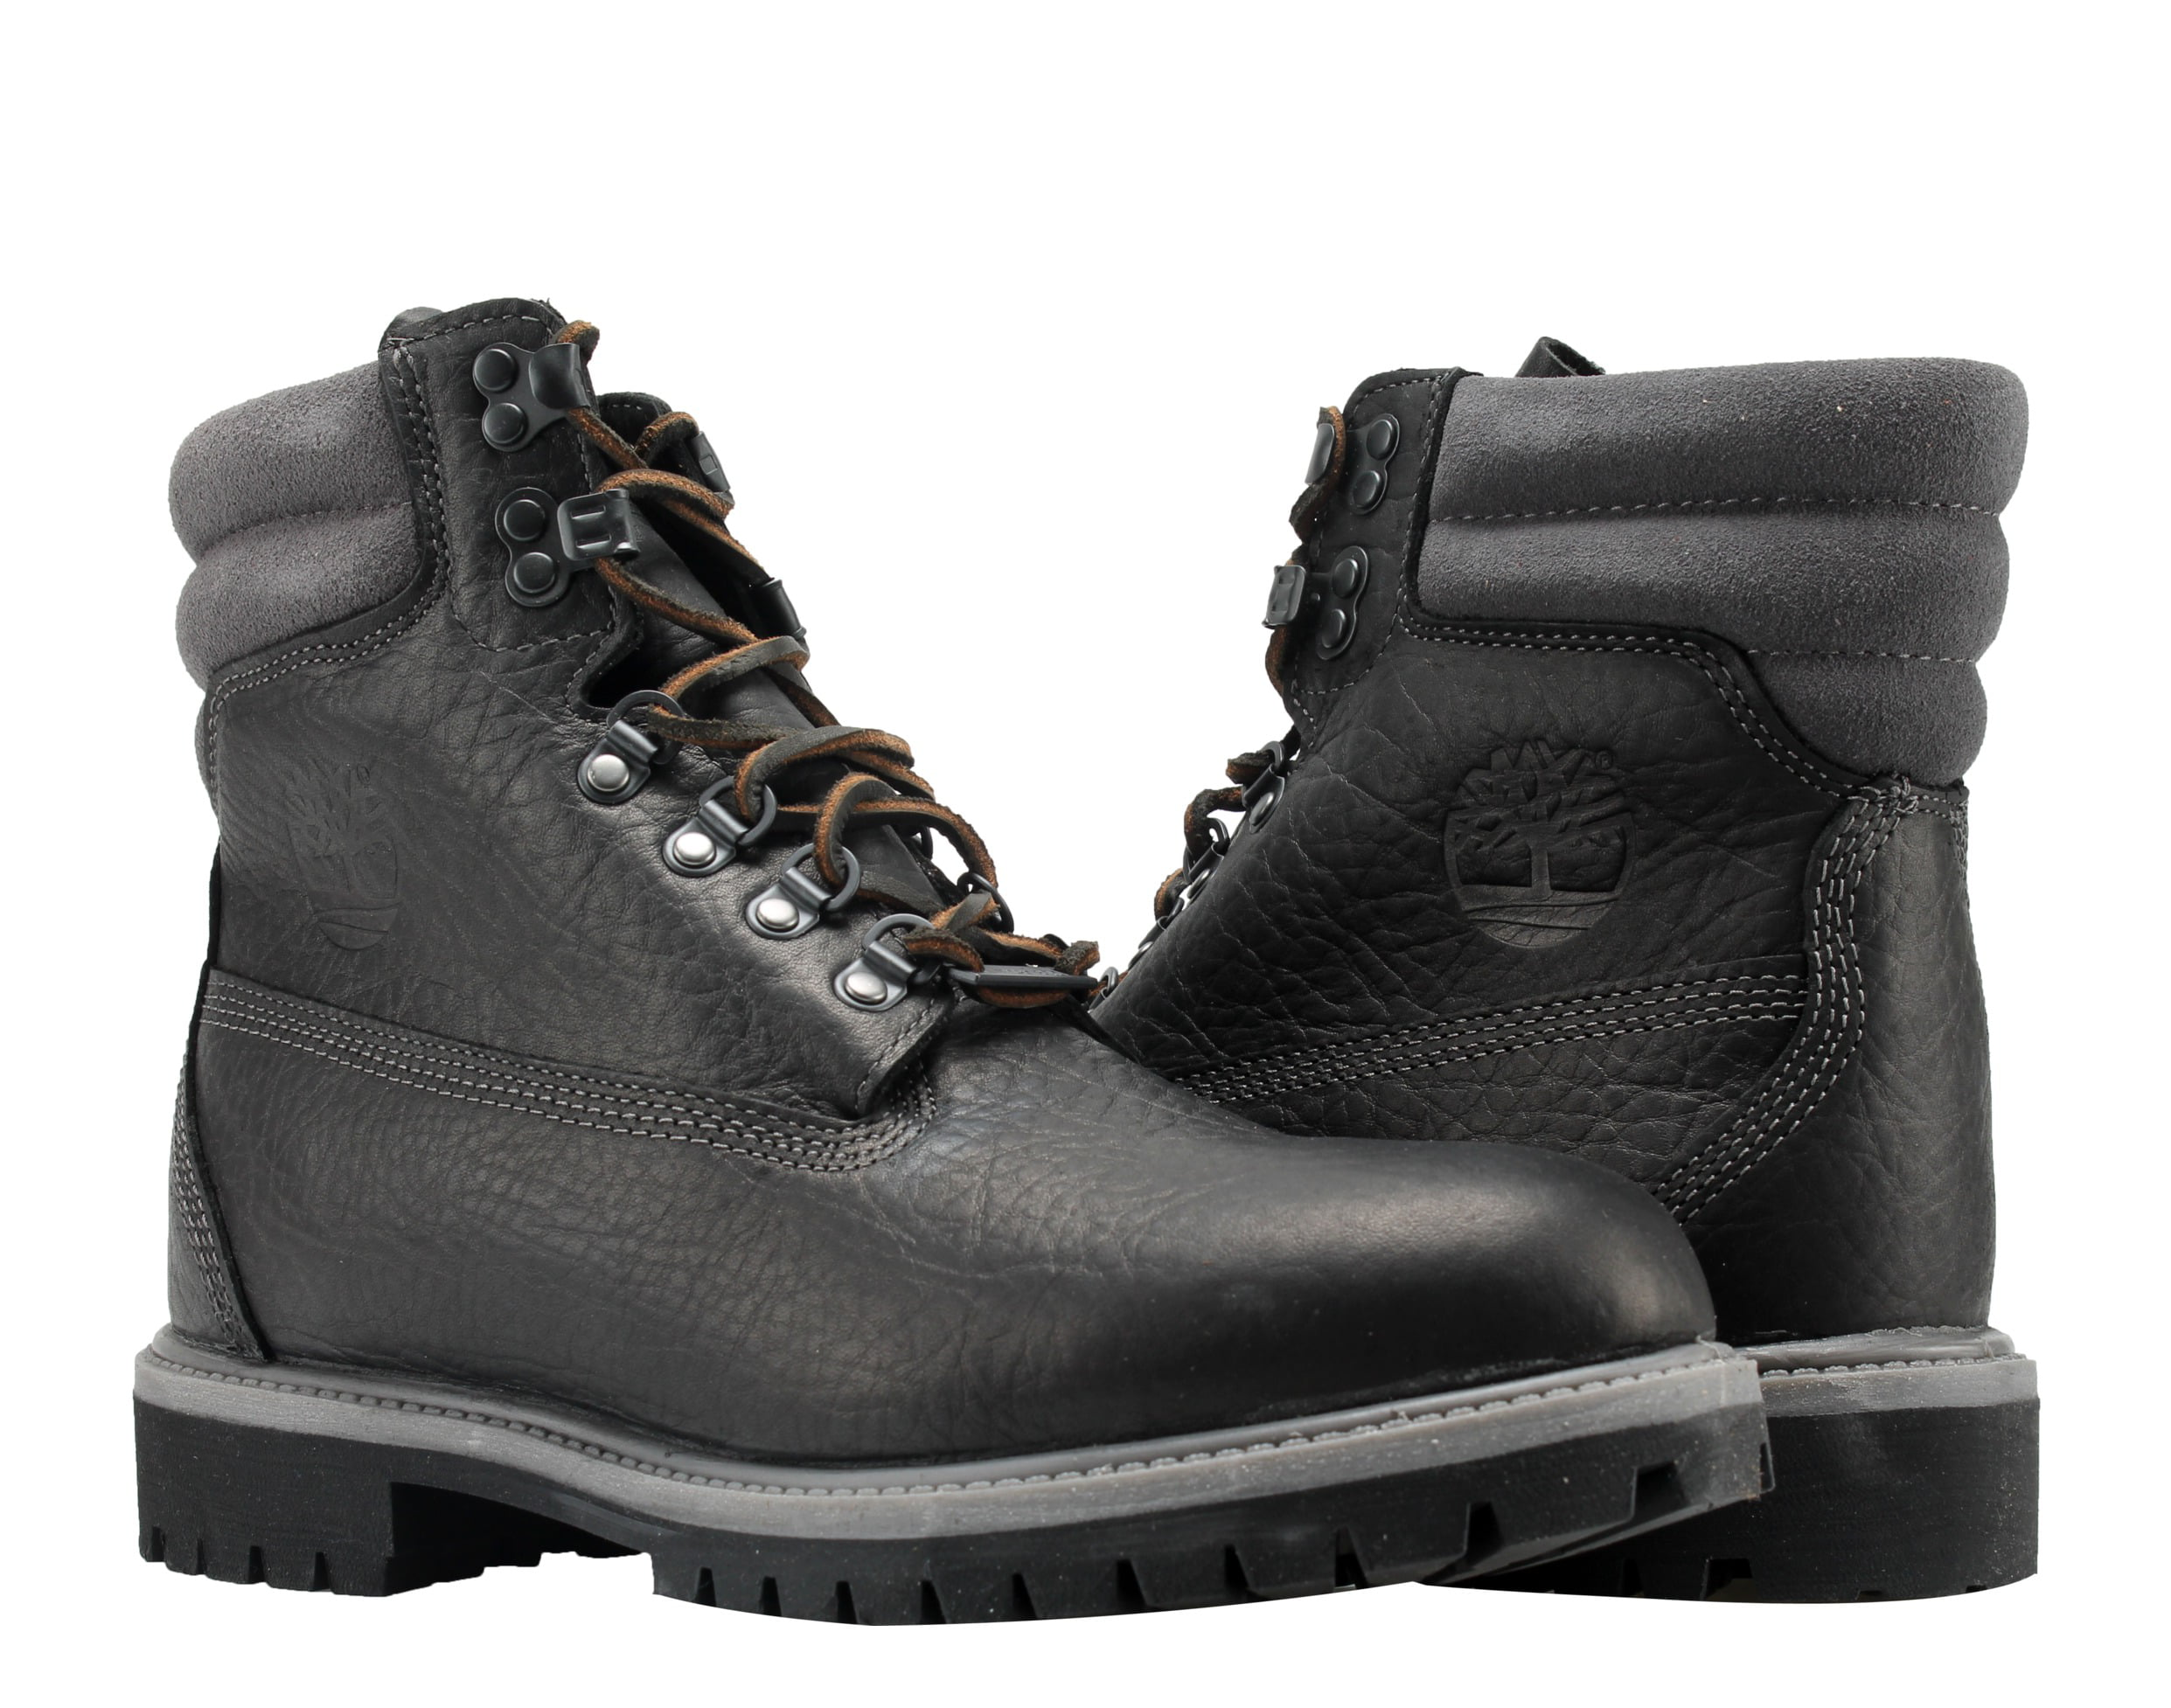 Timberland 6-Inch Premium 640 Below Waterproof Black Limited Men's Boots A1M98 by